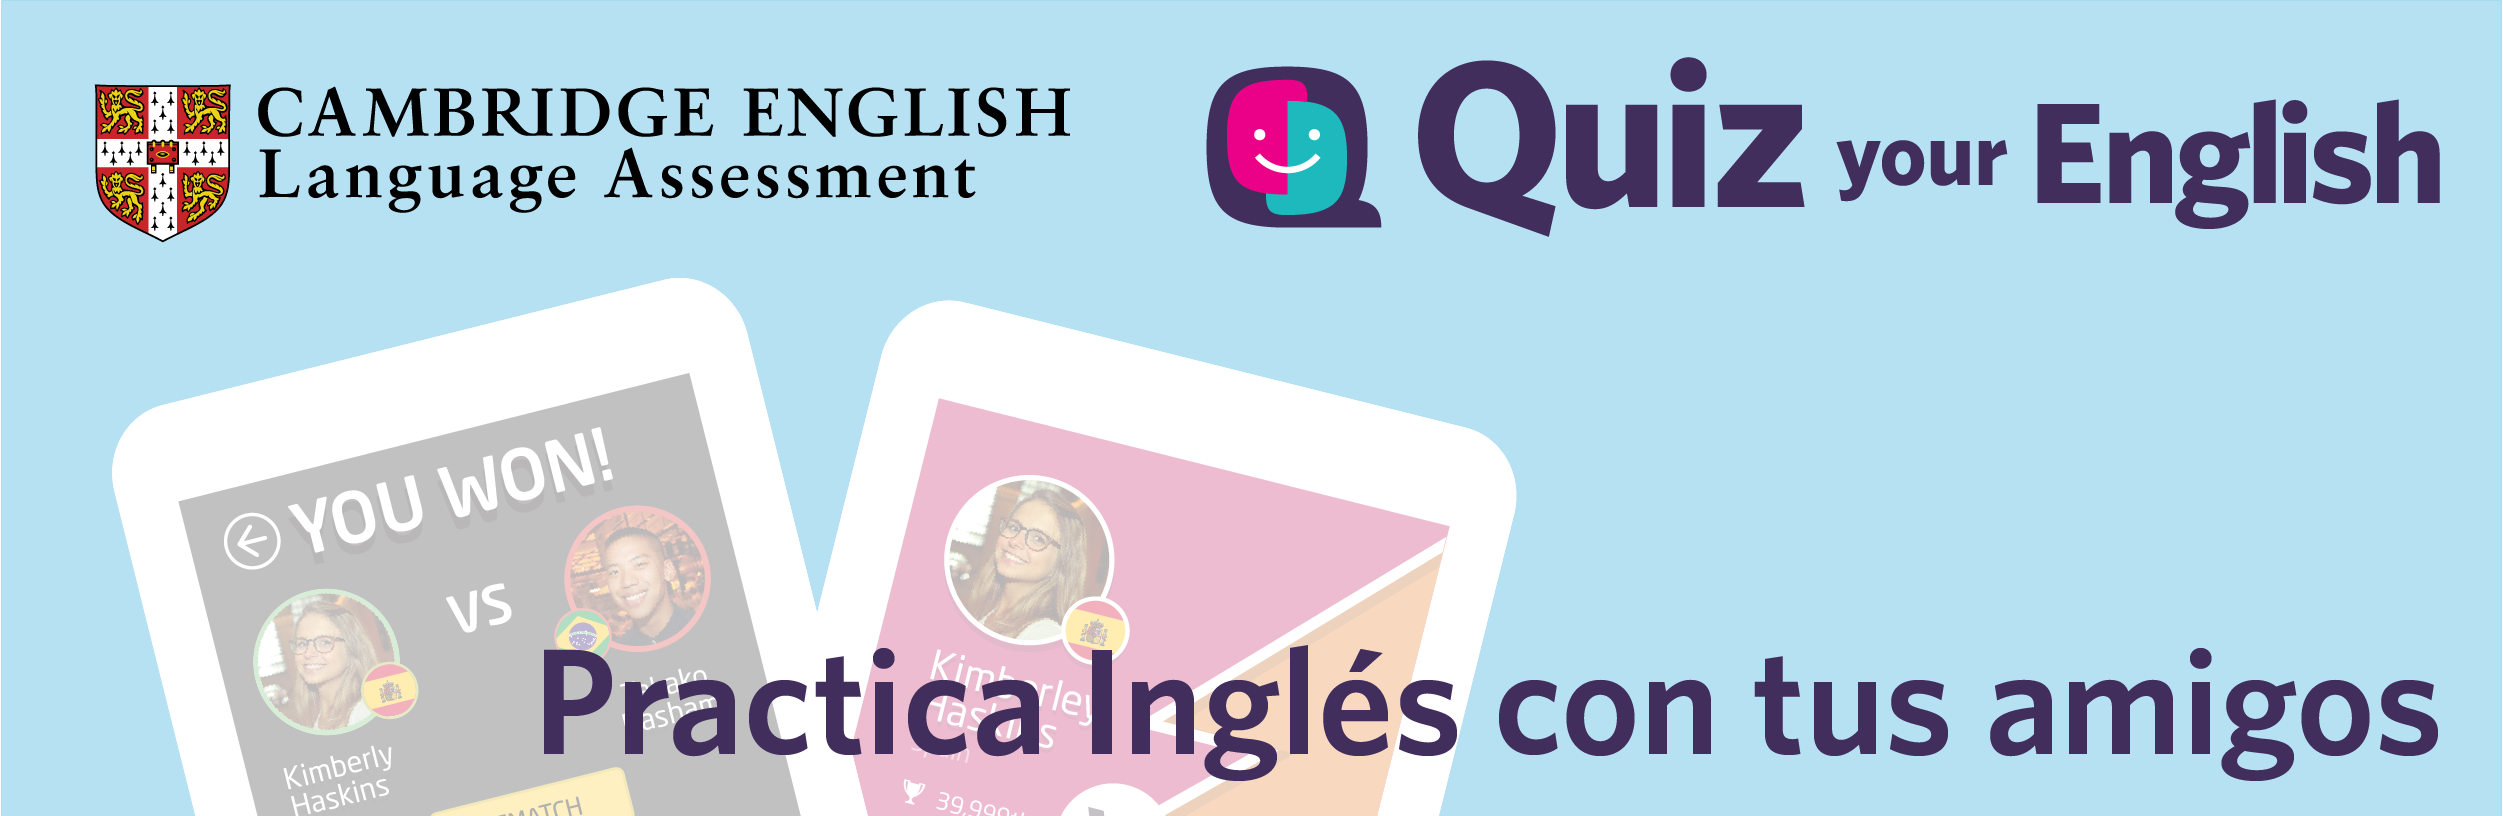 Quiz your English app